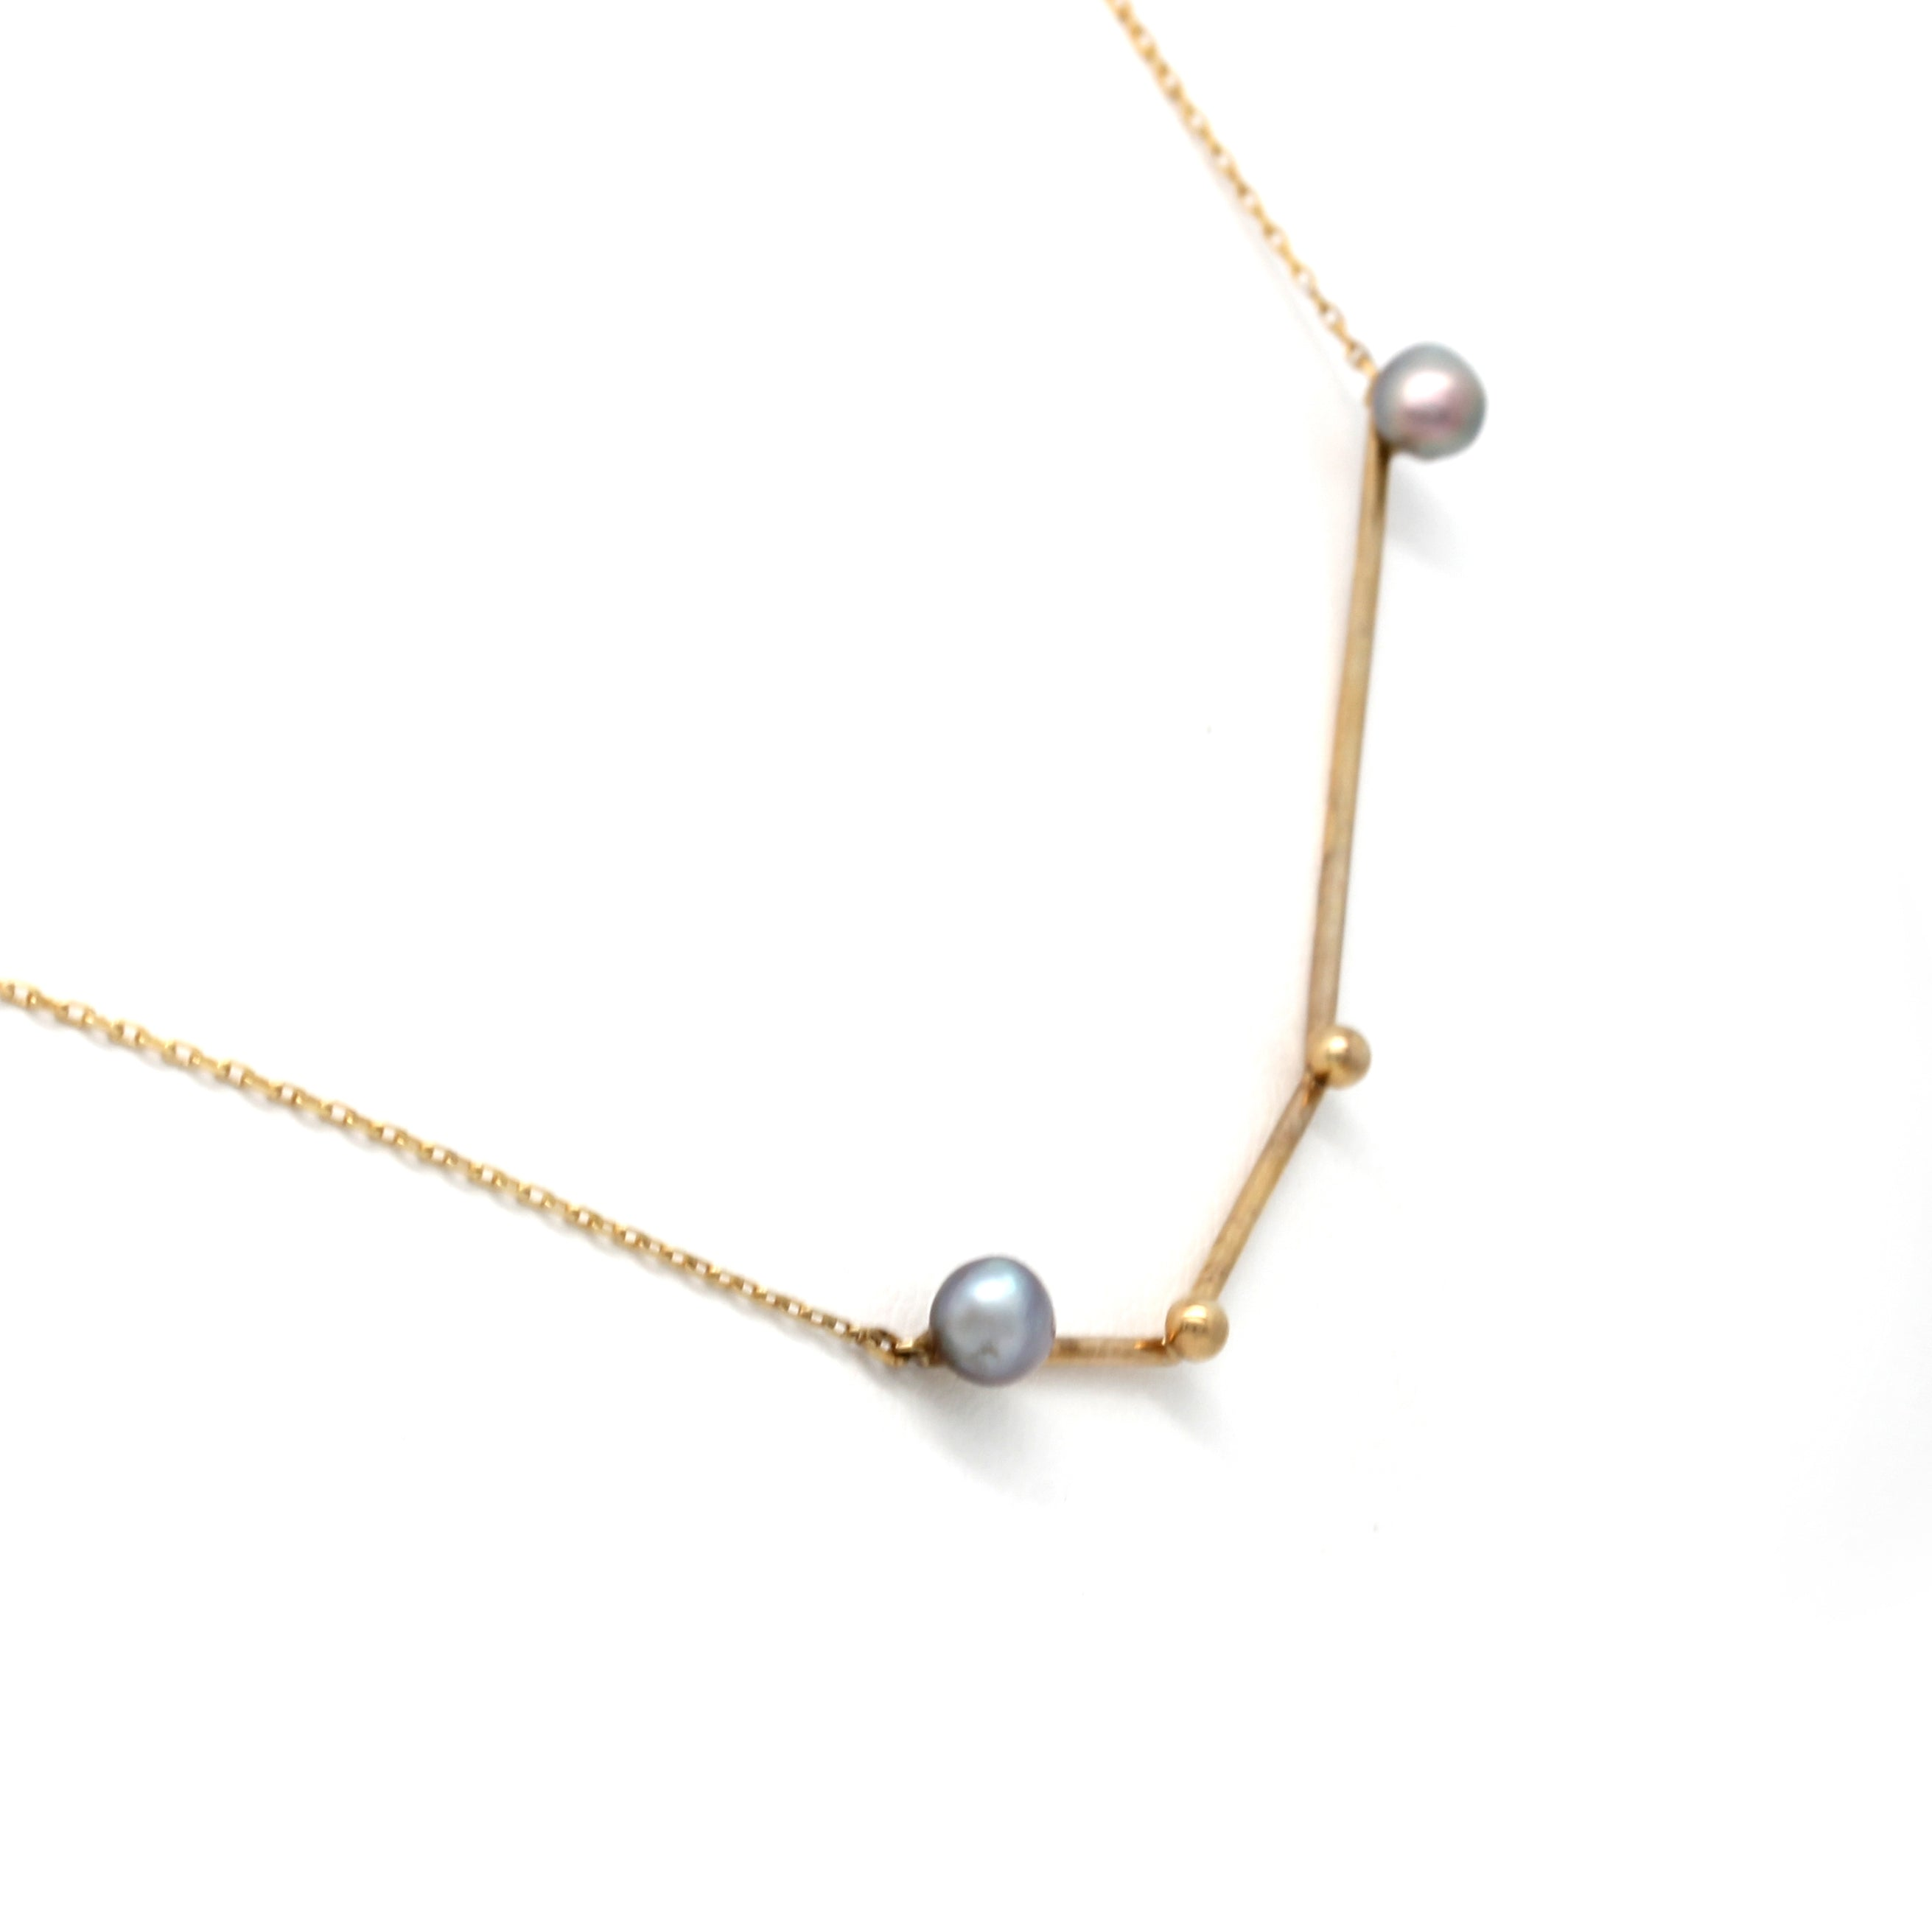 """Aries"" 14K Yellow Gold Pendant and Chain with Cortez Keshi Pearls"